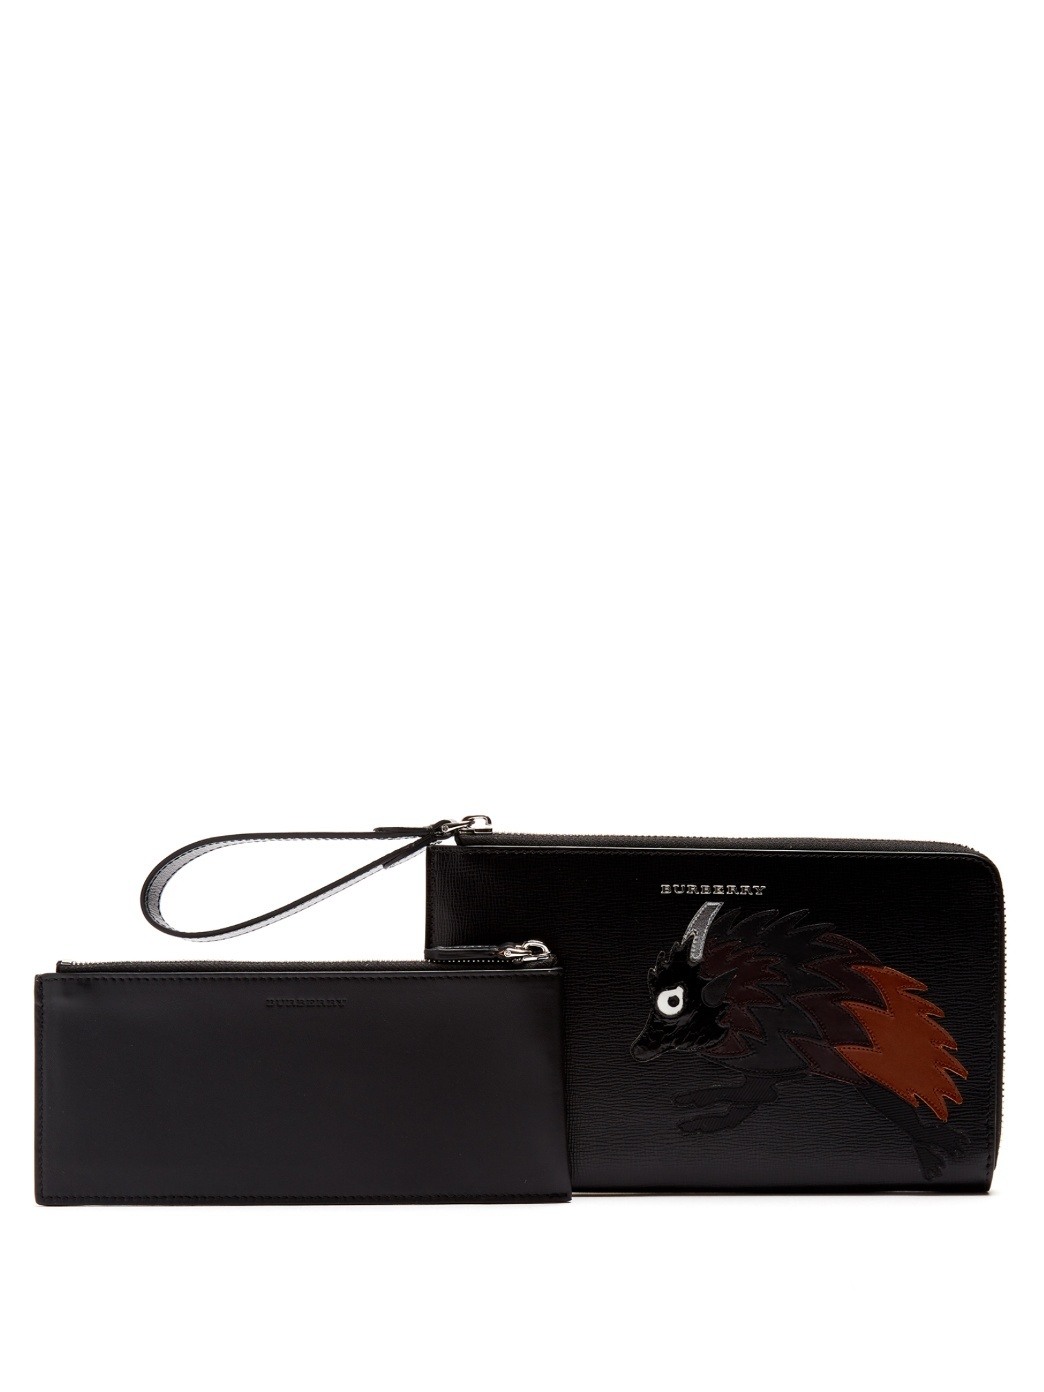 【VIPセール】Burberry★Beasts-applique leather wallet 財布